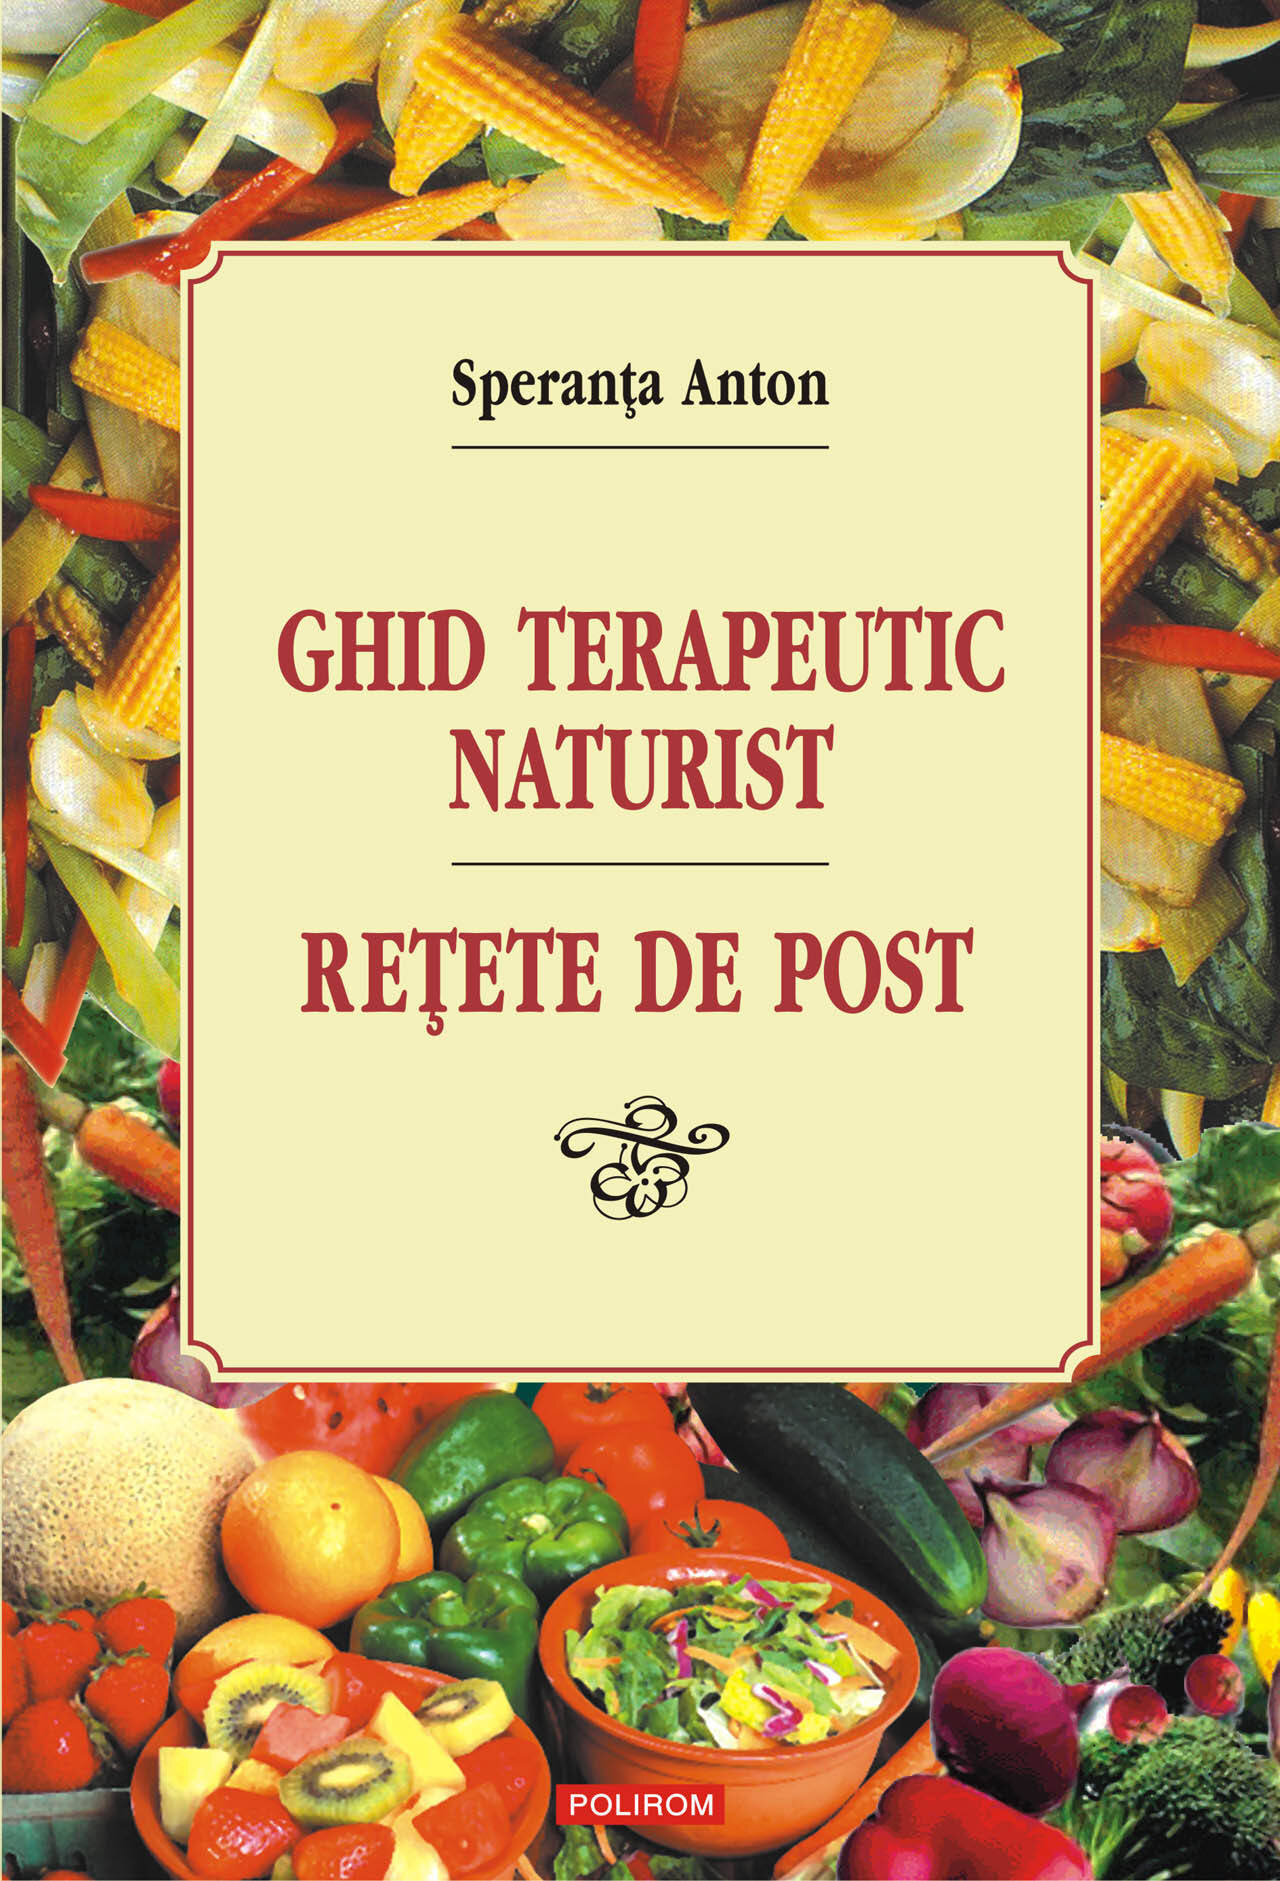 Ghid terapeutic naturist: retete de post (eBook)